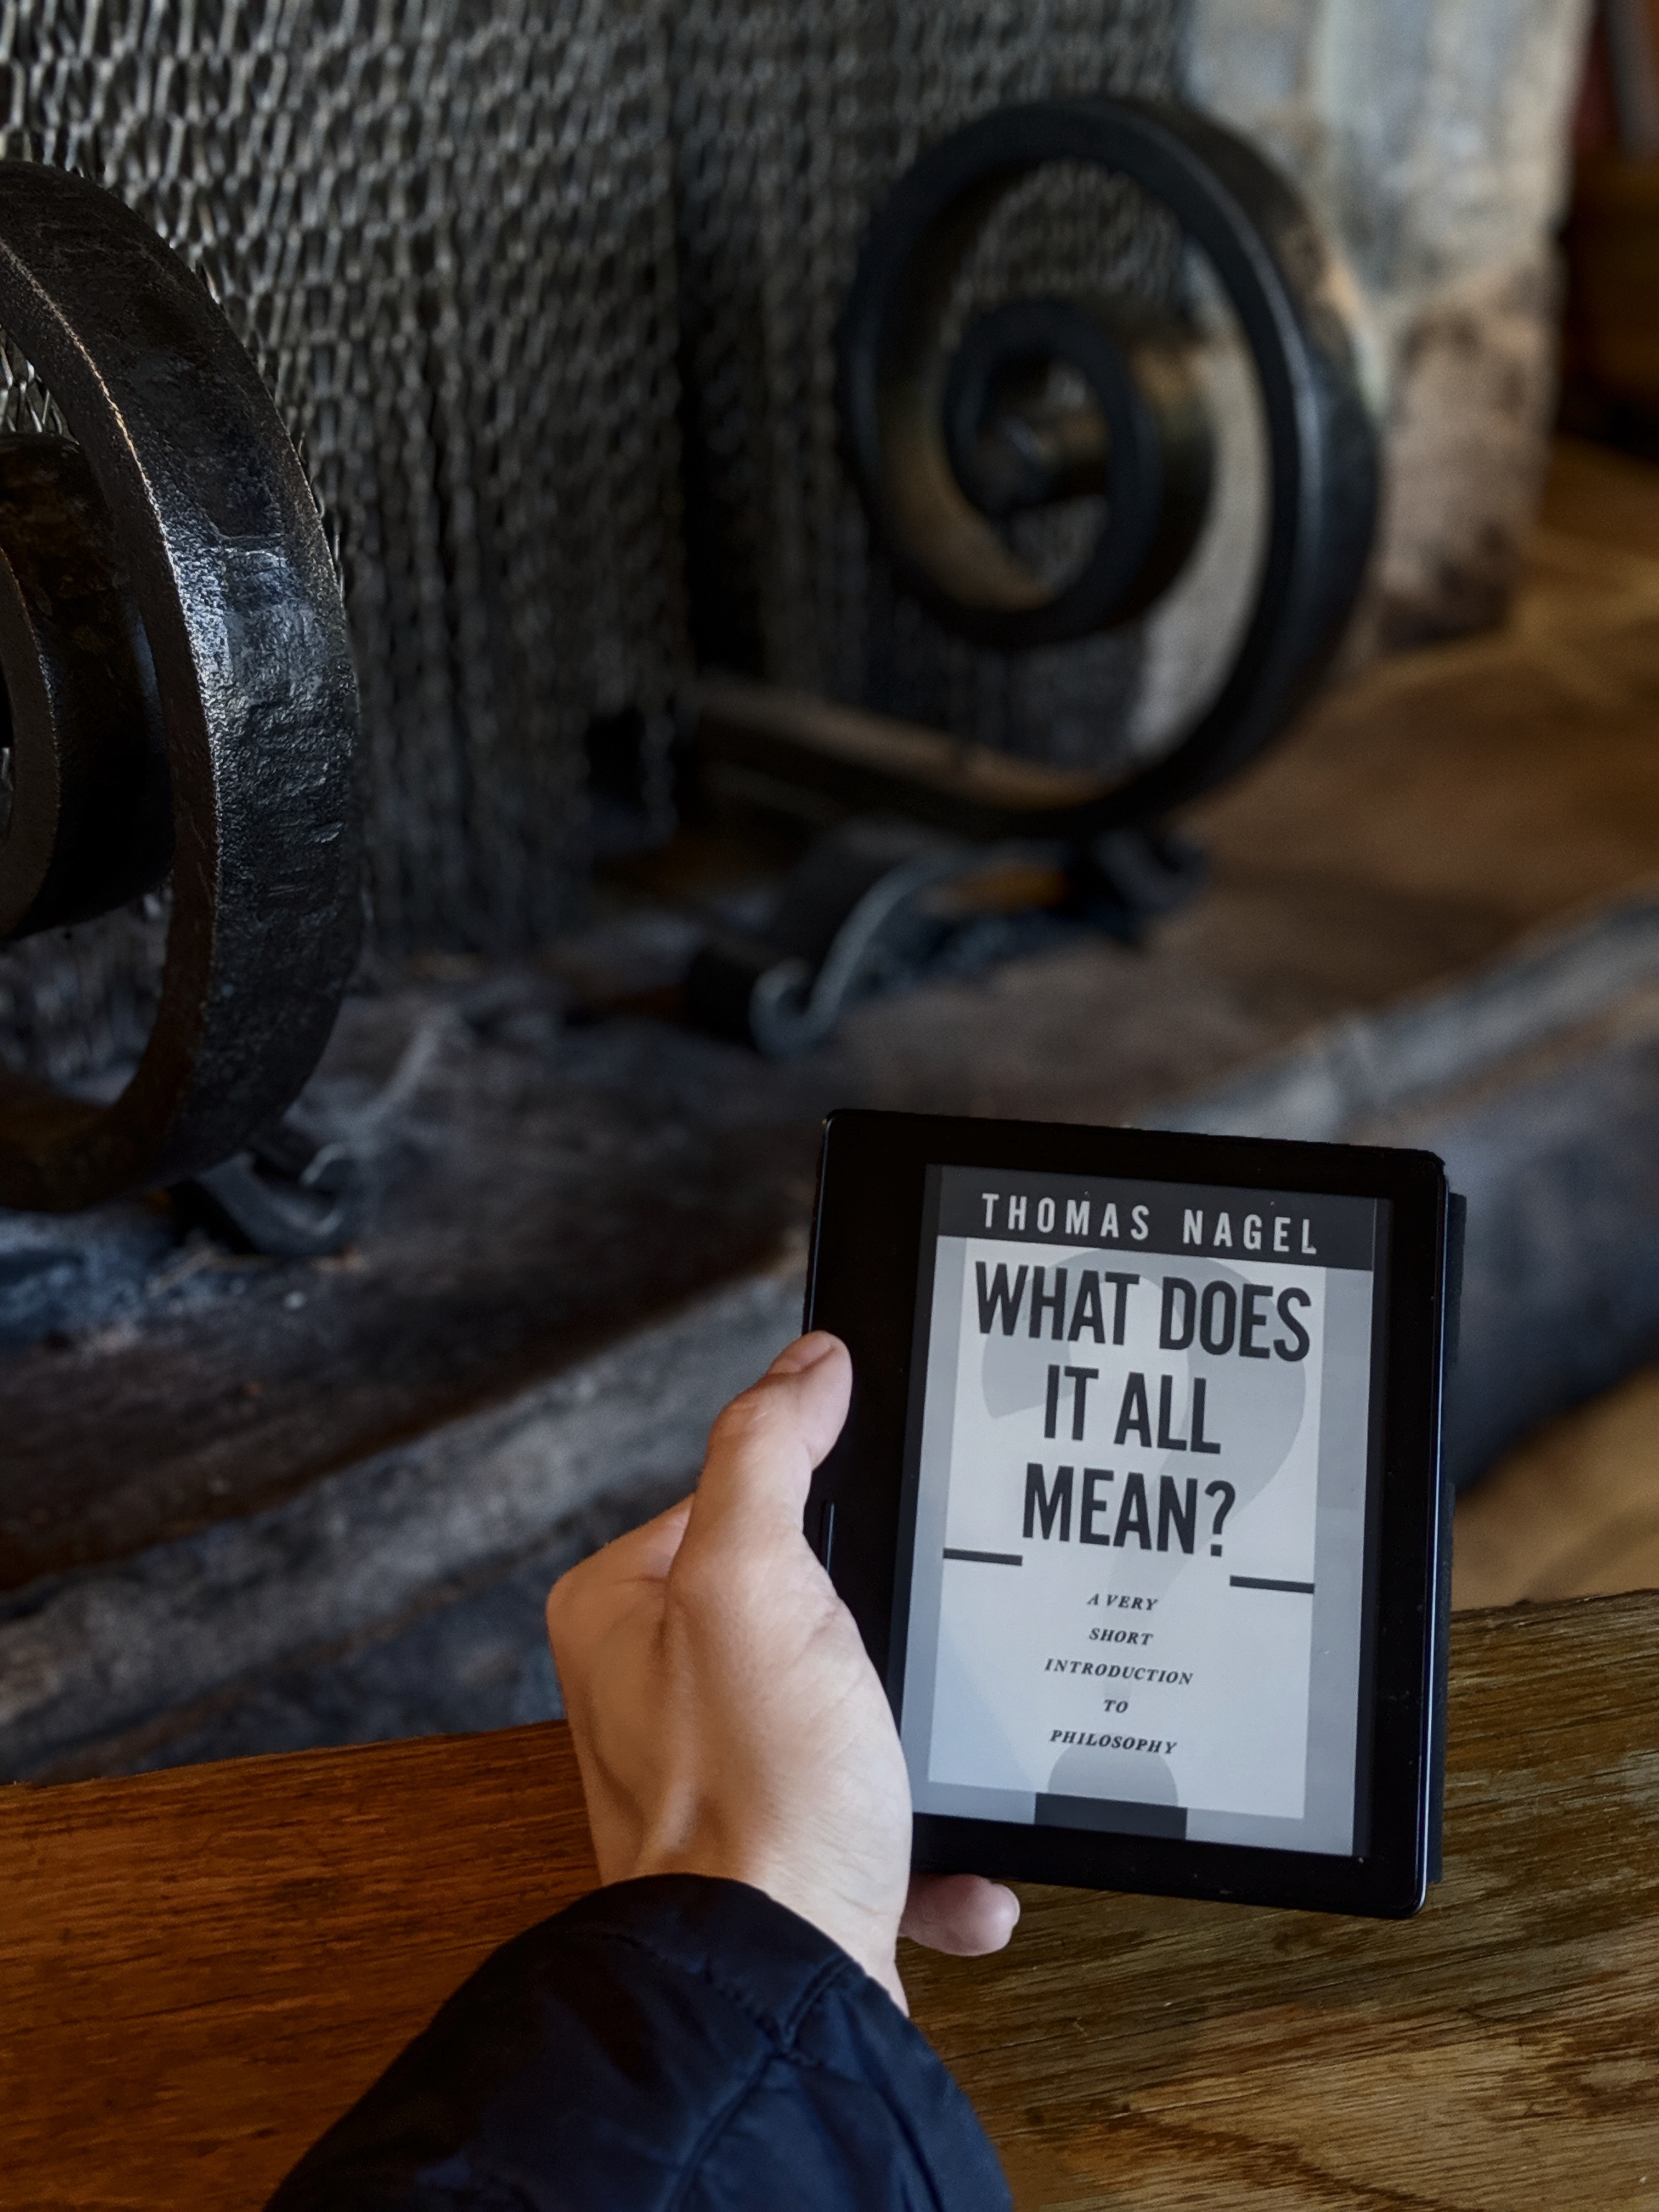 Hand with book: What does it all mean?